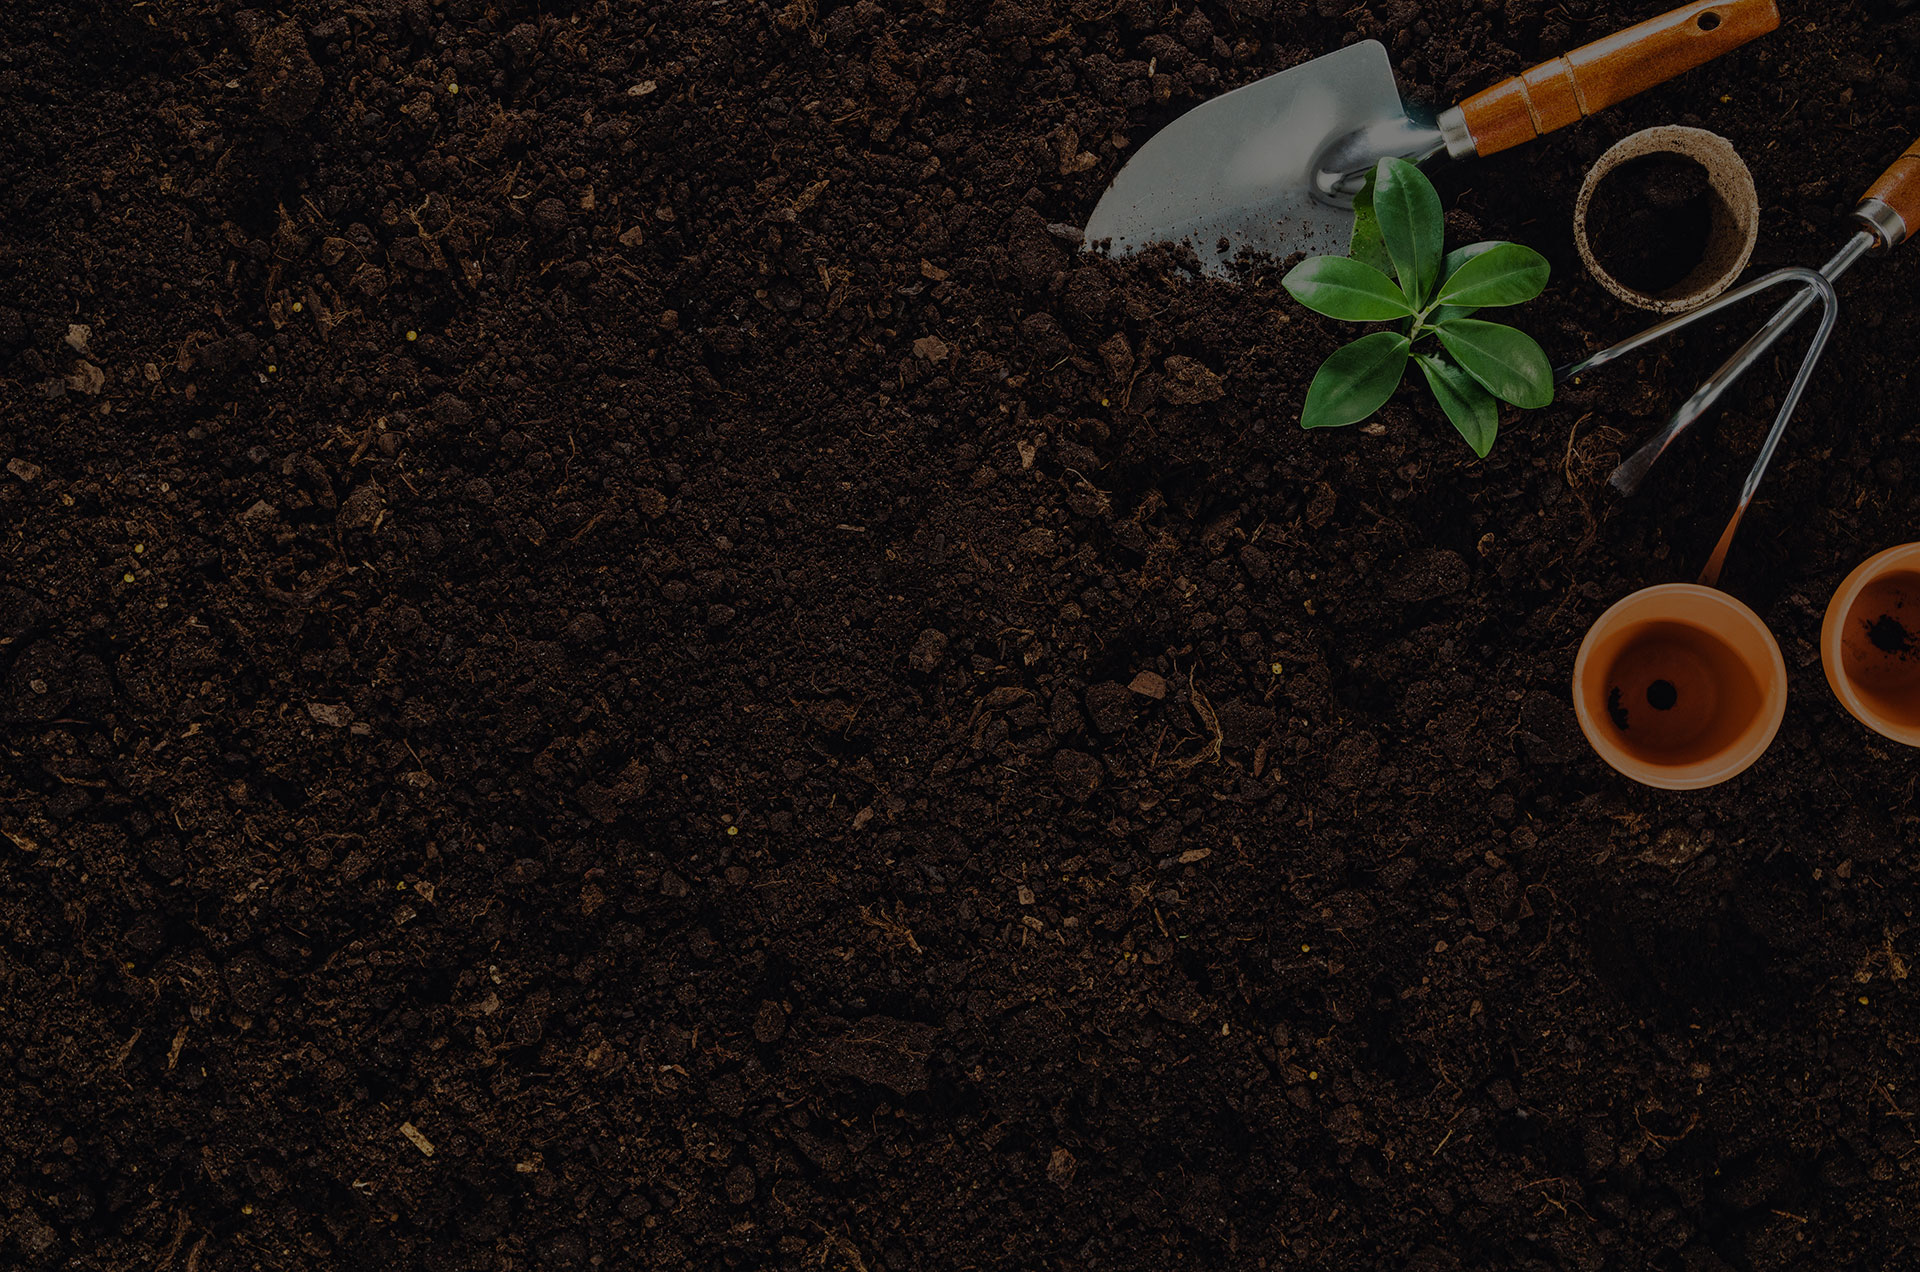 Gardening tools on fertile soil texture background seen from above, top view